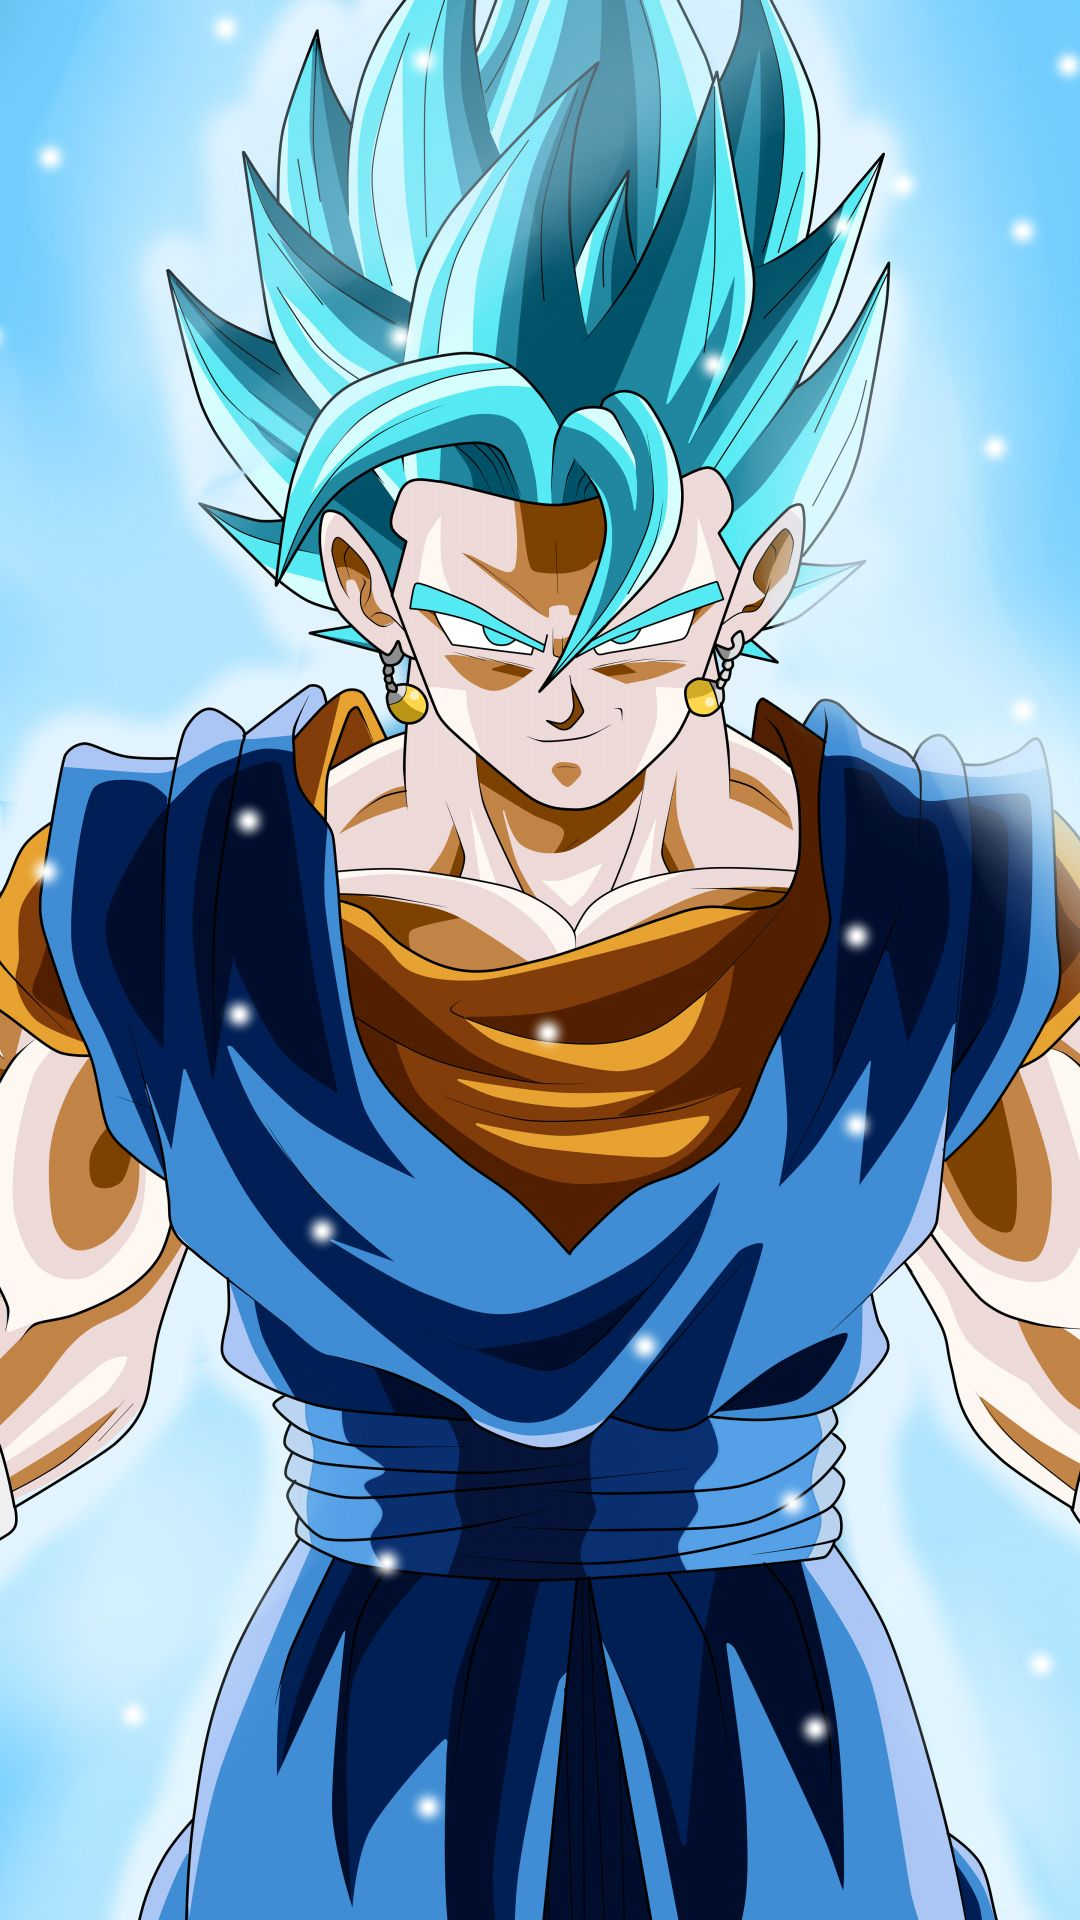 Attitude, Dragon ball, anime, Vegito wallpaper Anime